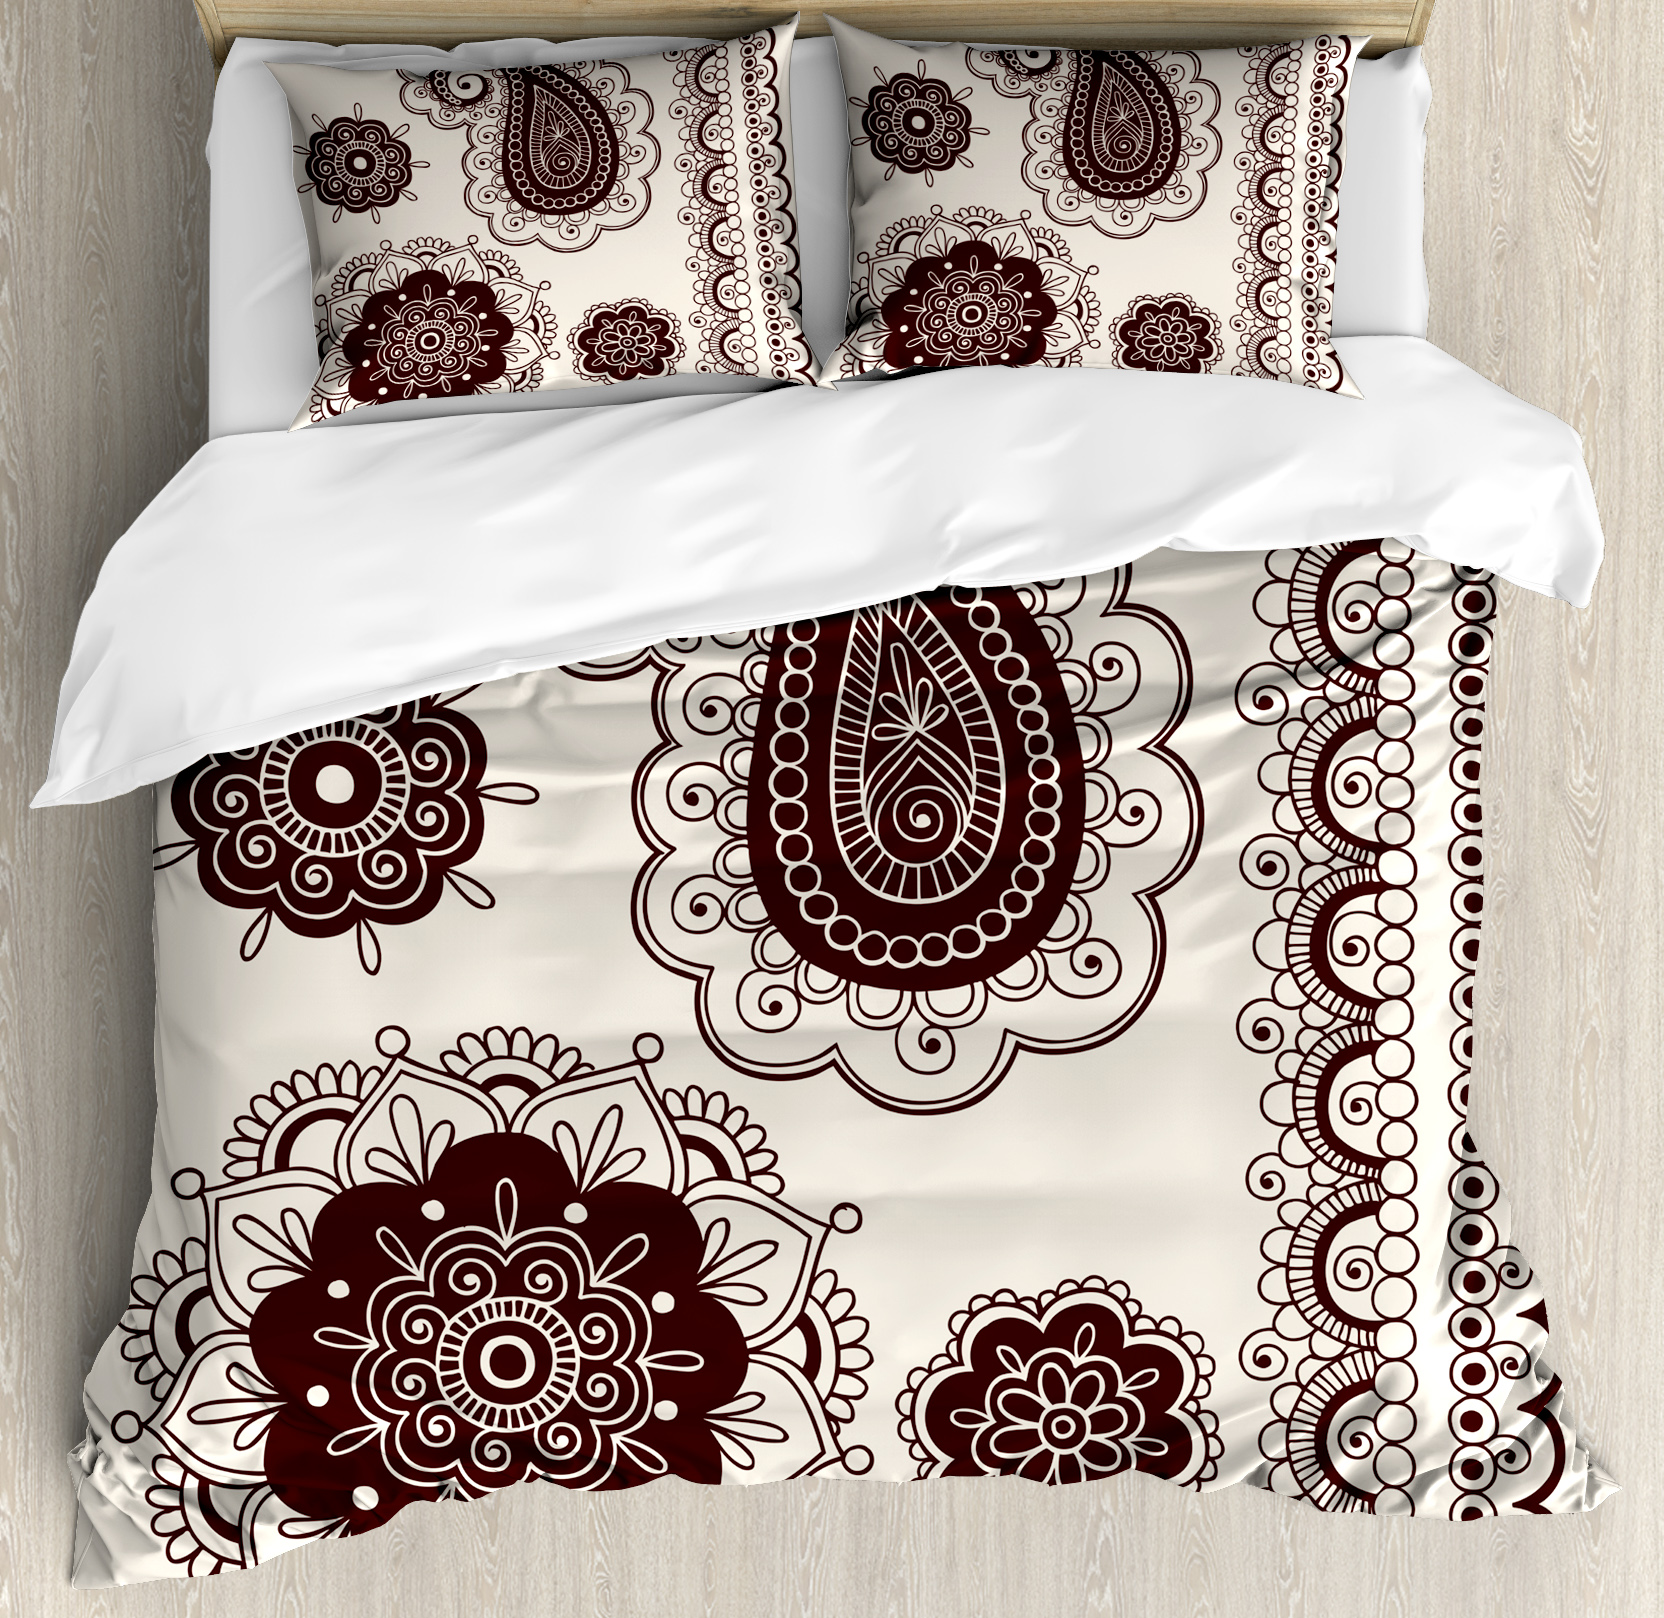 Henna Queen Size Duvet Cover Set, Intricate Hand Drawn Tattoo Paisley Doodle Eastern Culture Inspired Design, Decorative 3 Piece Bedding Set with 2 Pillow Shams, Dark Brown Cream, by Ambesonne